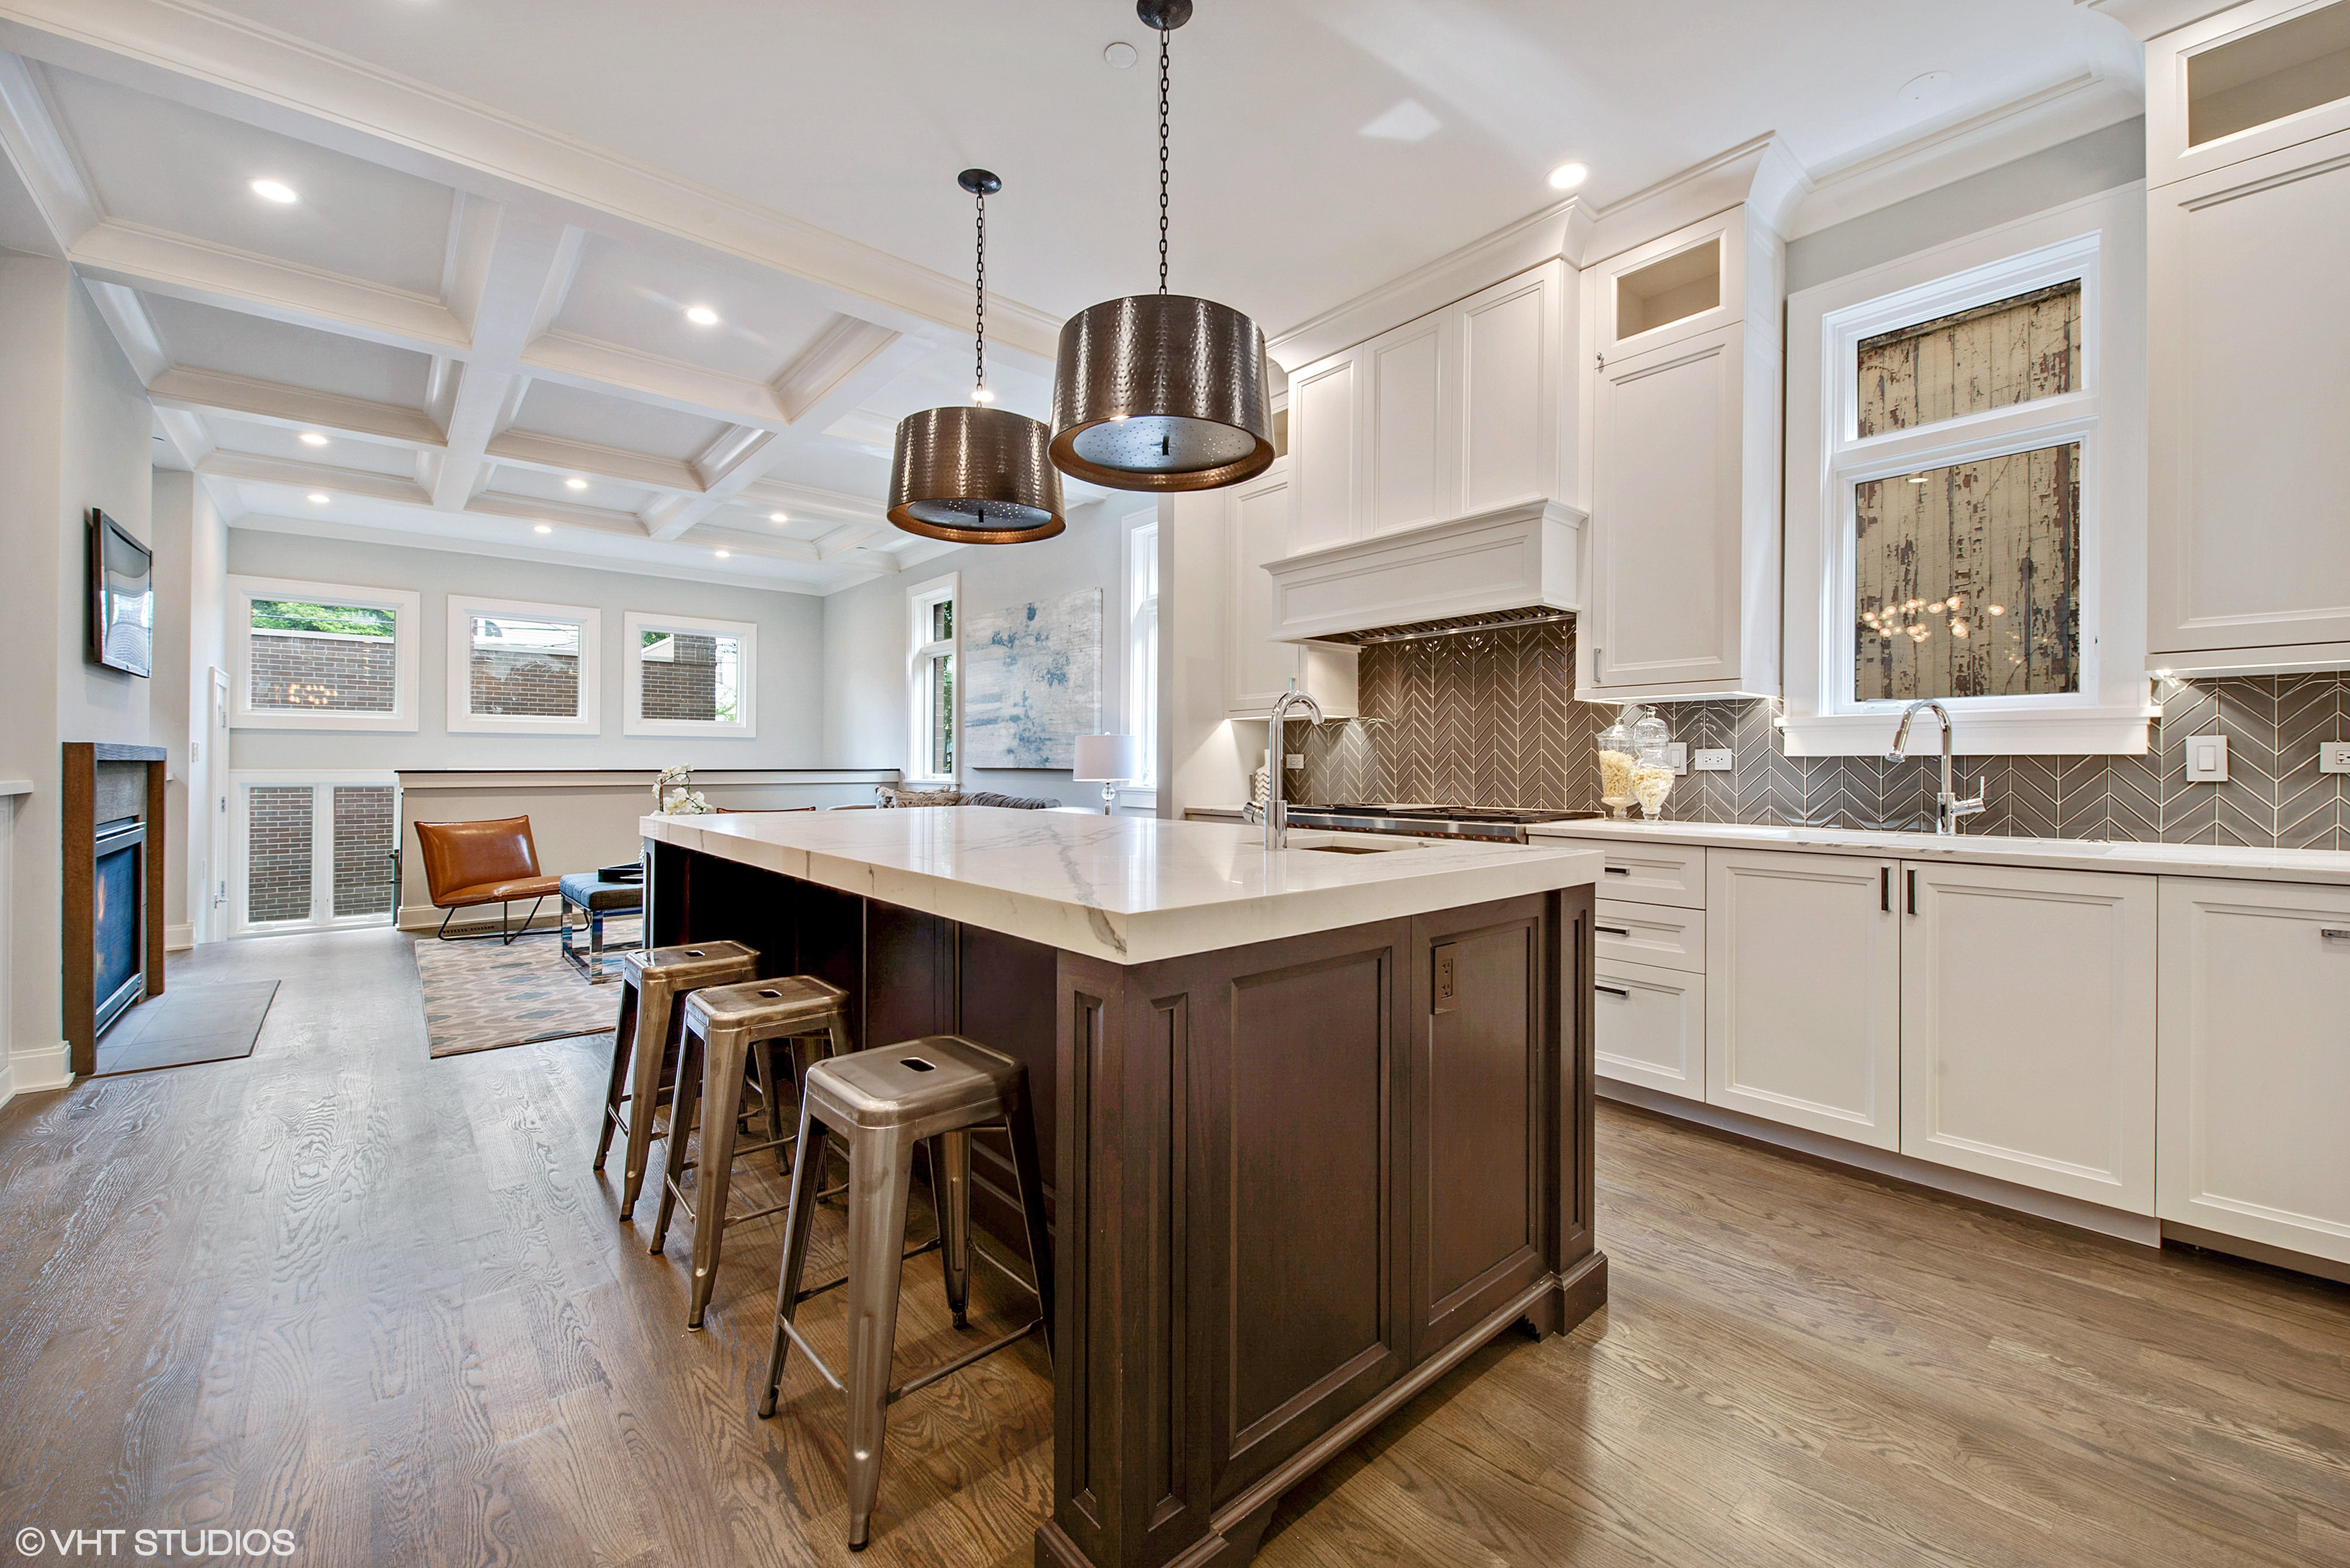 As A Boutique Infill Builder Specializing In Chicagou0027s Luxury Market,  Taylor Johnson Client Barnett Homes Is Well Versed In The Must Have Kitchen  Elements ...